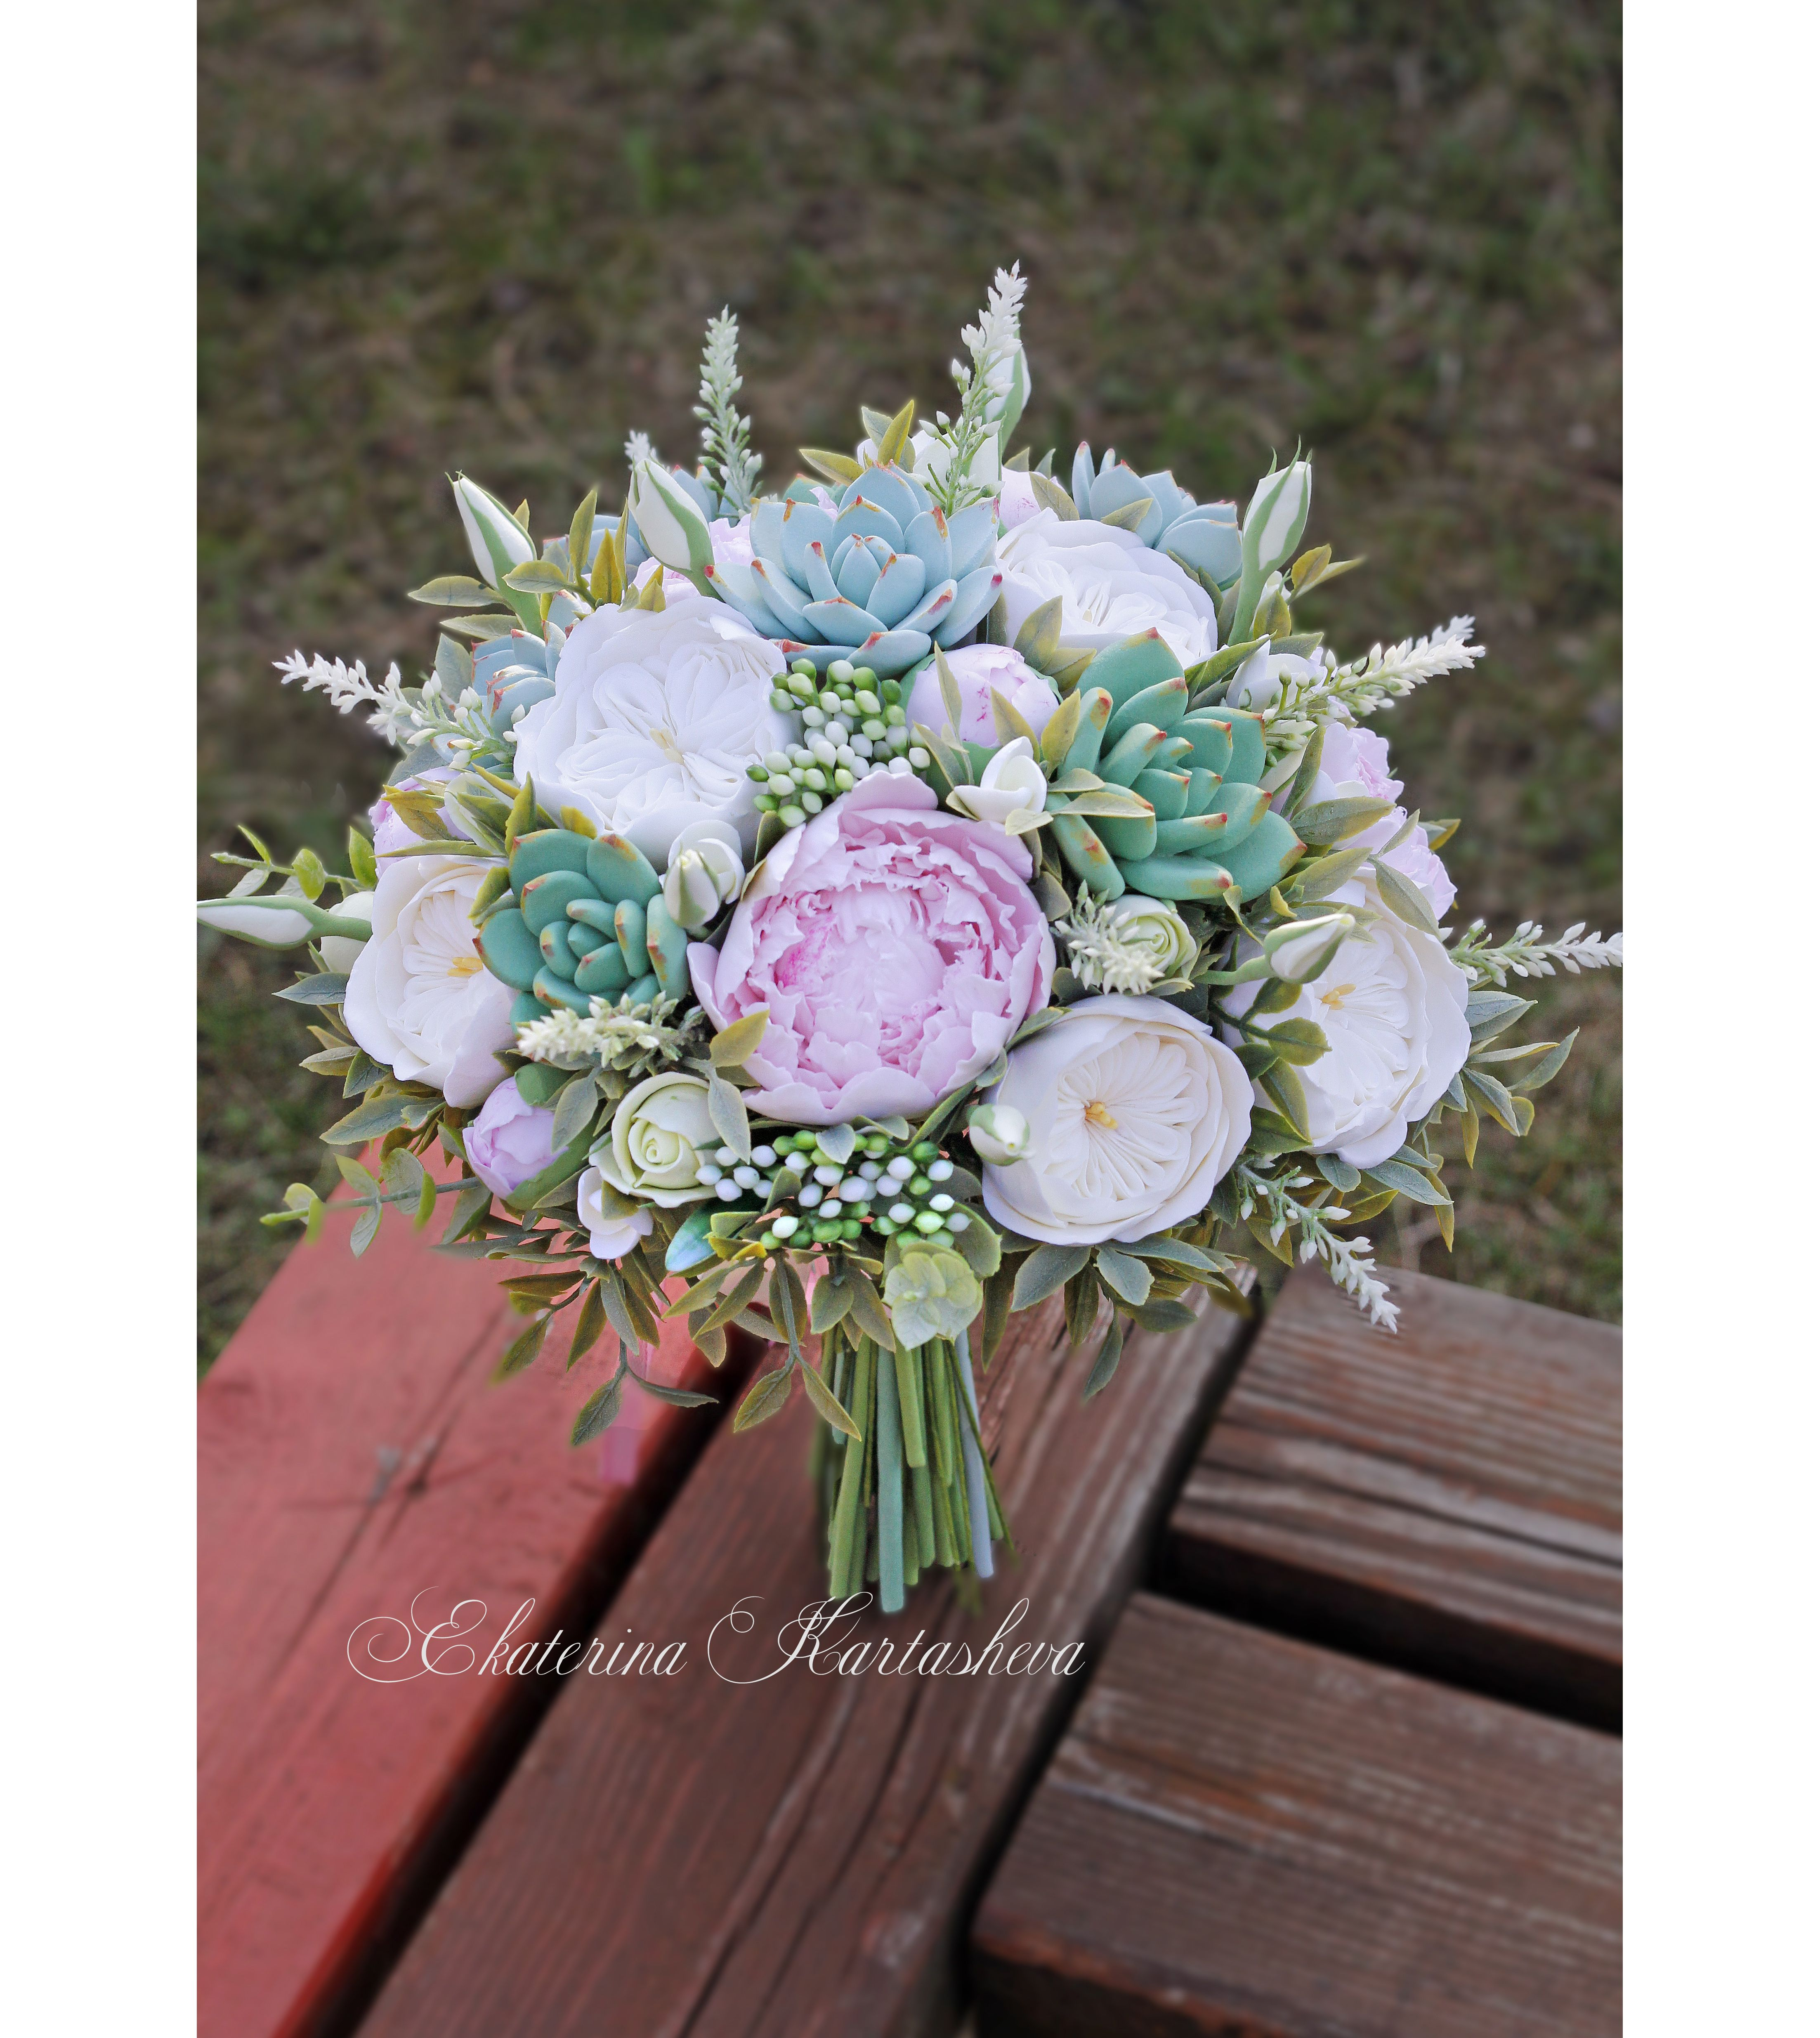 Wedding bouquet succulent bouquet Clay bouquet flowers bridal ...